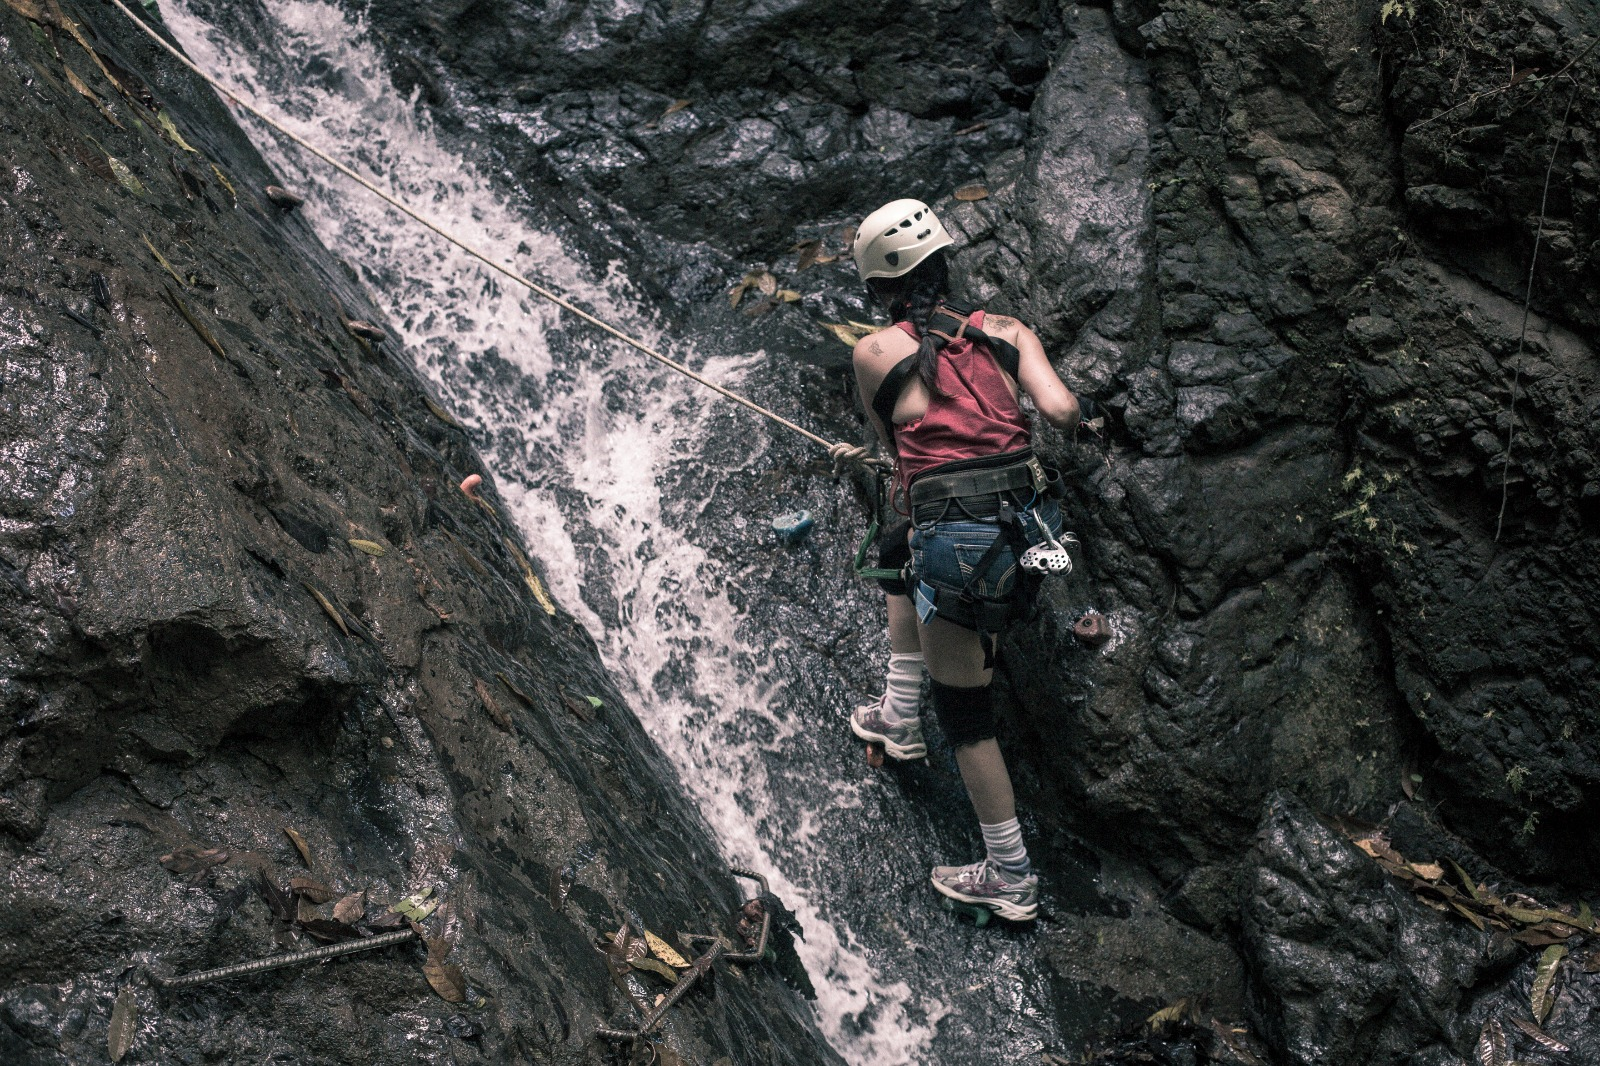 Canyoning Exciting Multi-Sport Adventure (10)